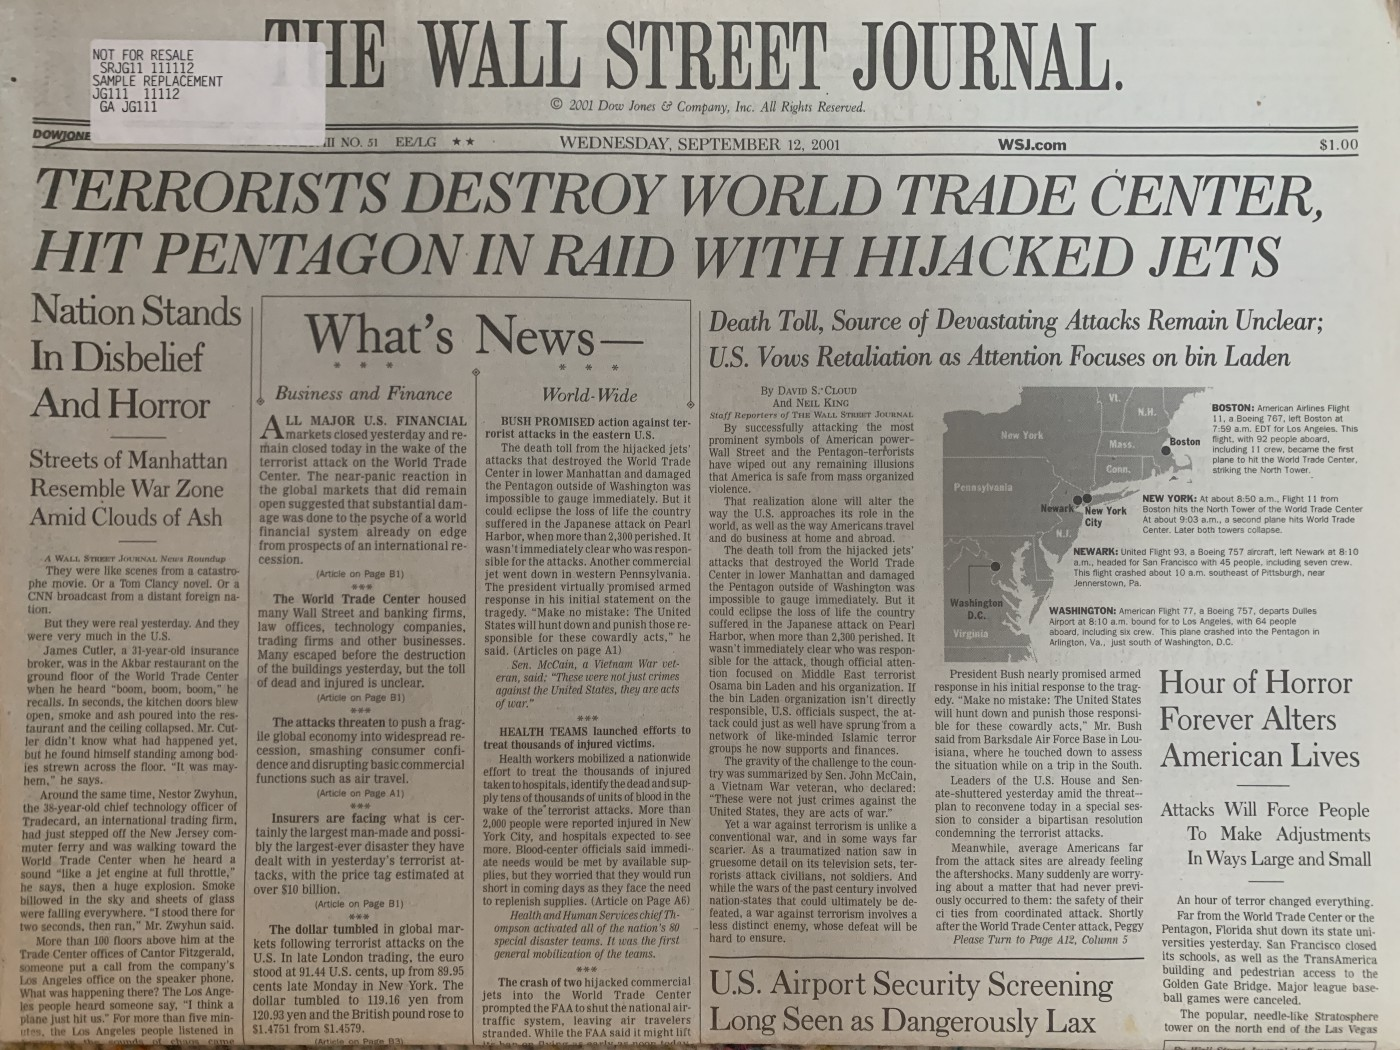 """A photo of the front page of the Wall Street Journal from September 12, 2001 """"Terrorists Destroy World Trace Center—Hit Pentagon in Raid with Hijacked Jets."""""""